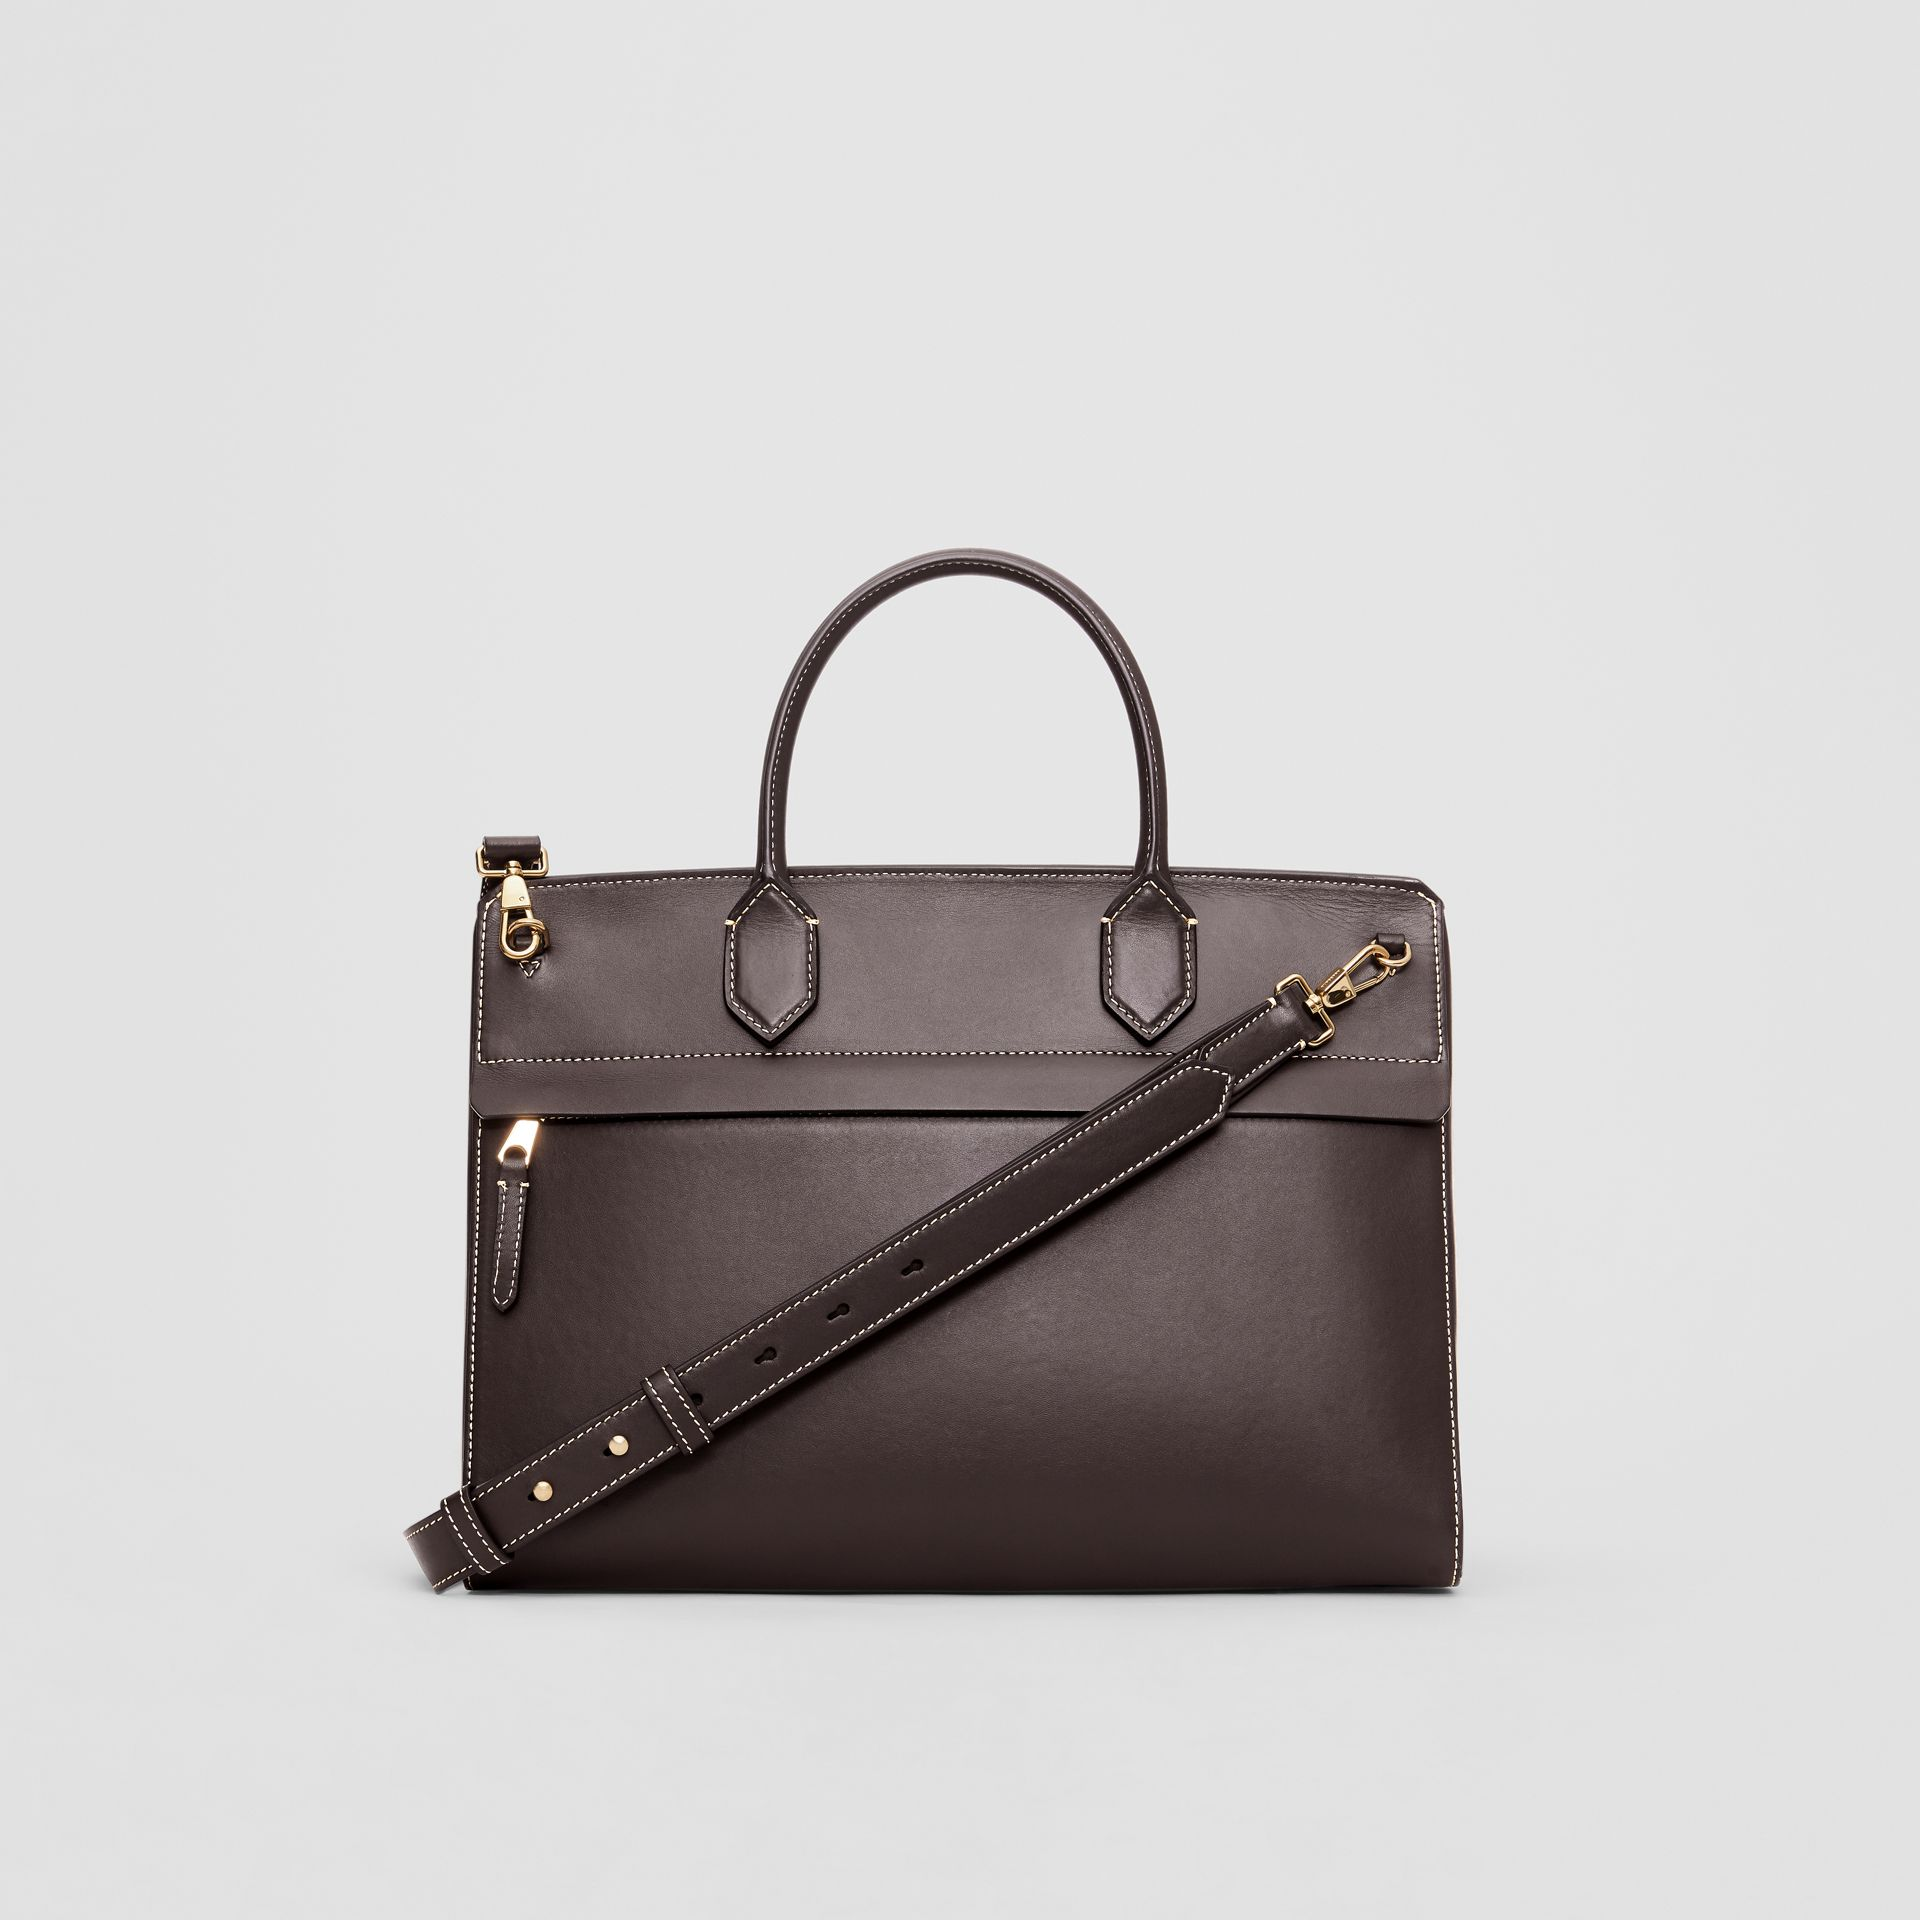 Medium Leather Elizabeth Bag in Coffee - Women | Burberry - gallery image 7